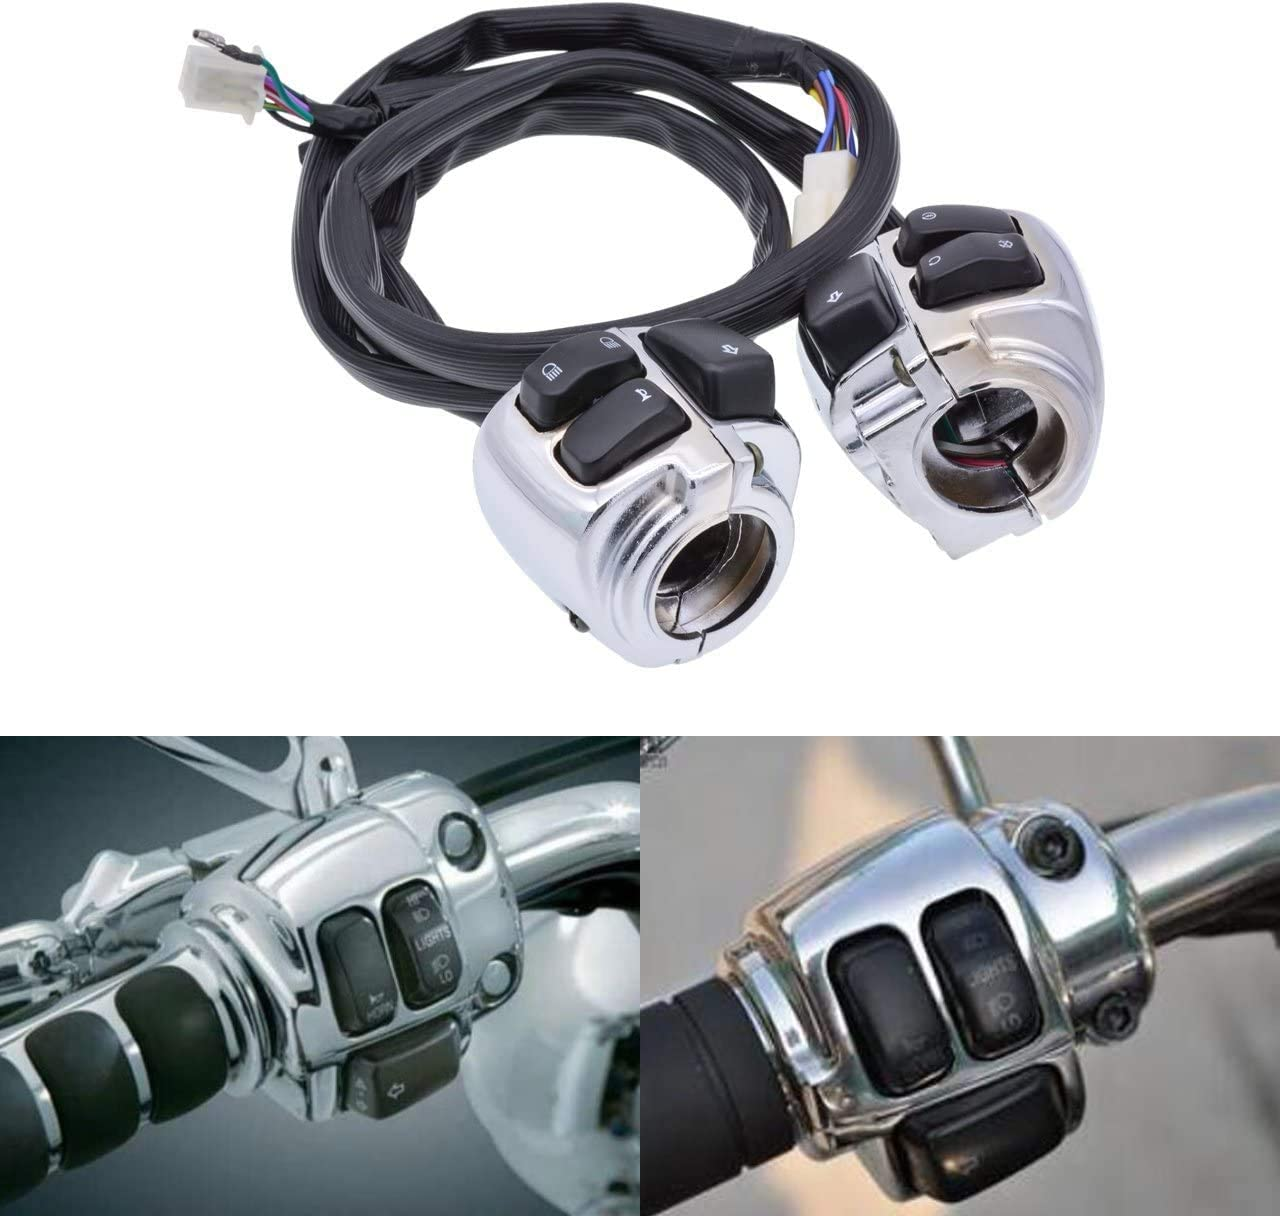 Sportster 1200 Dyna Clankmoto Waterproof Motorcycle 1 25mm Handlebar Control Switch with Wire for 1996-2012 Harley Softail Sportster 883 V-Rod